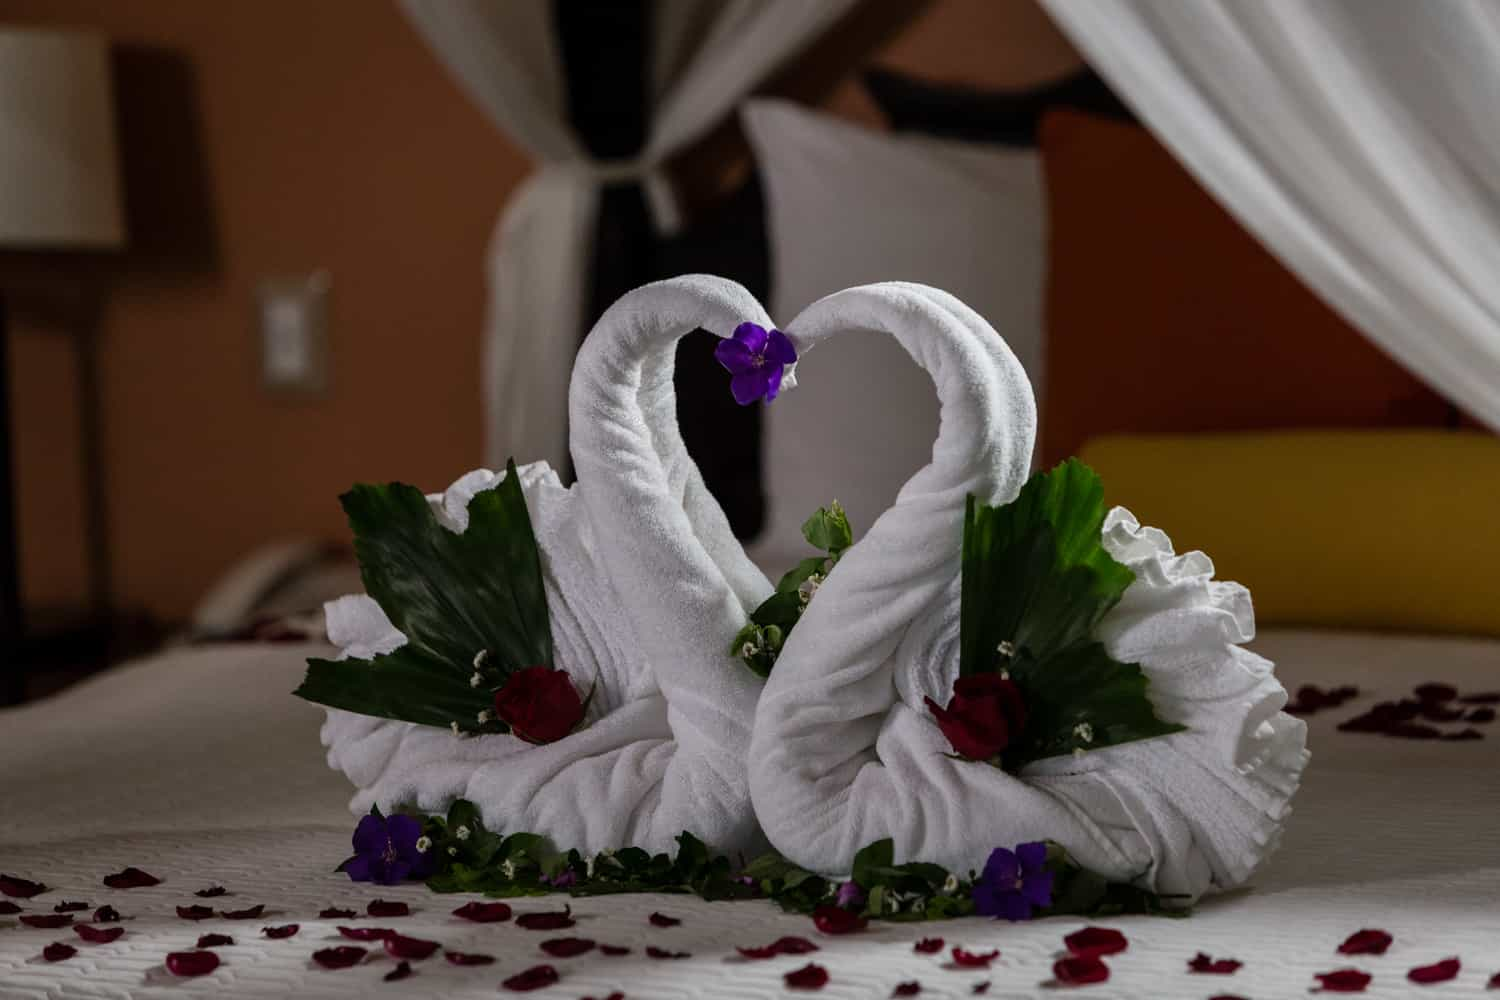 Swans and rose petals decorate canopy bed for just married couple.